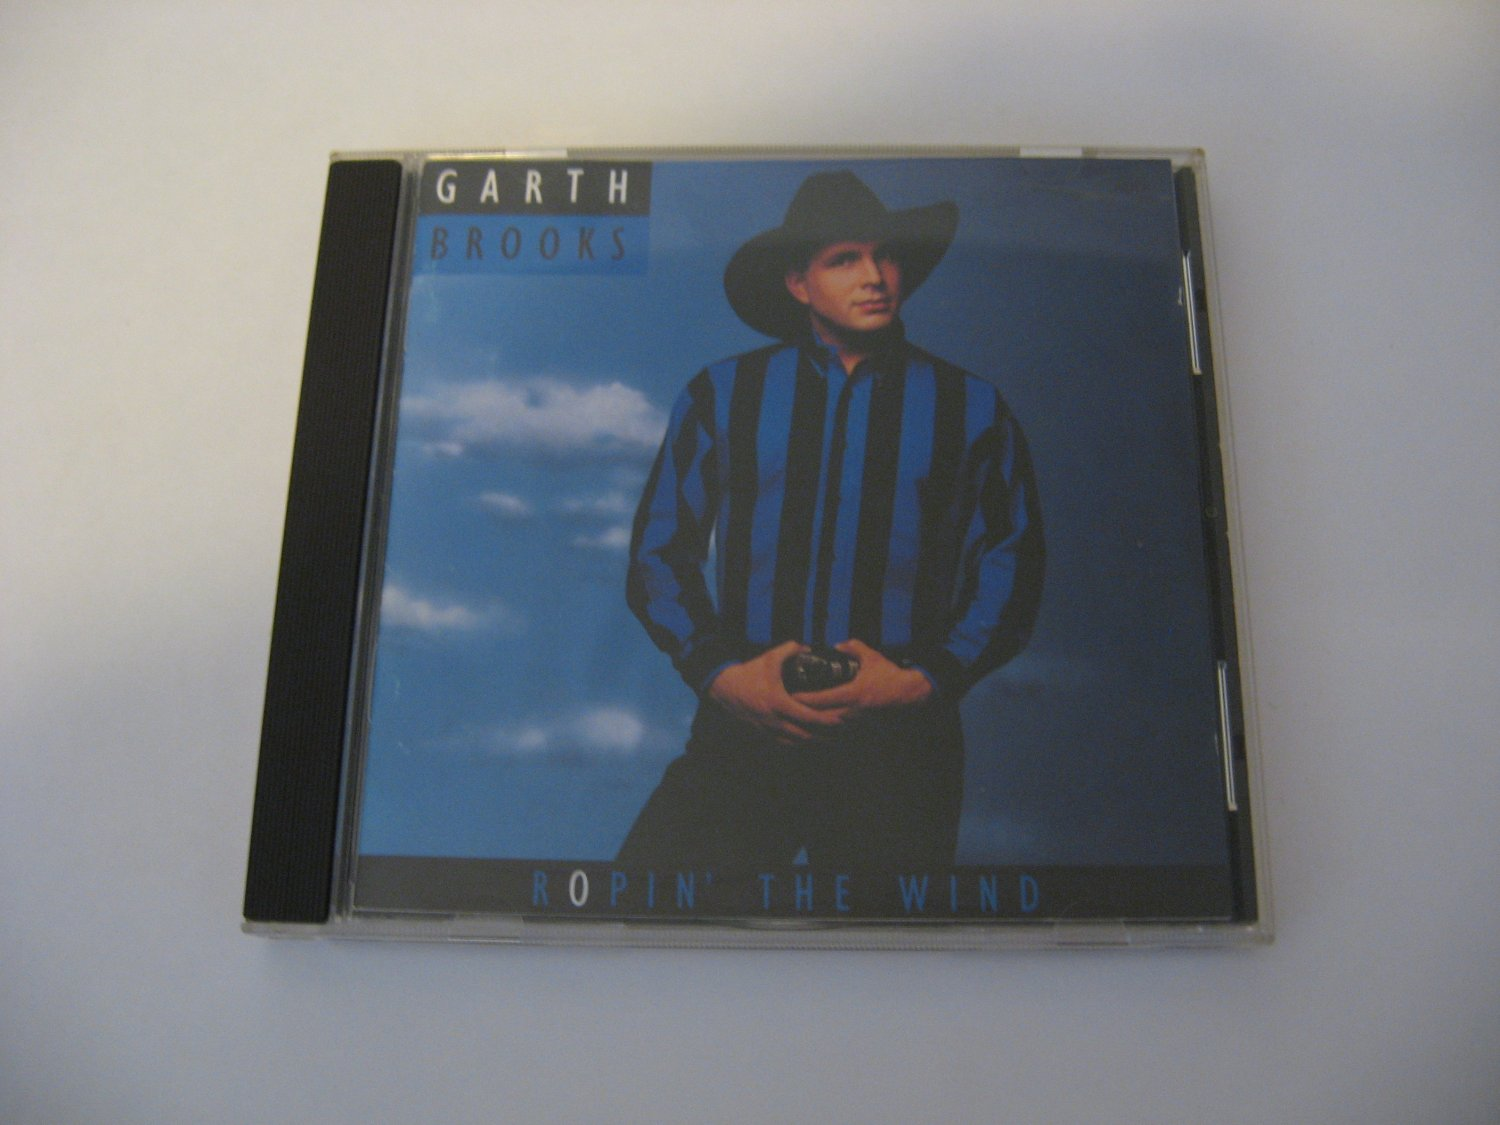 Garth Brooks - Ropin' The Wind - 1991  (CD)